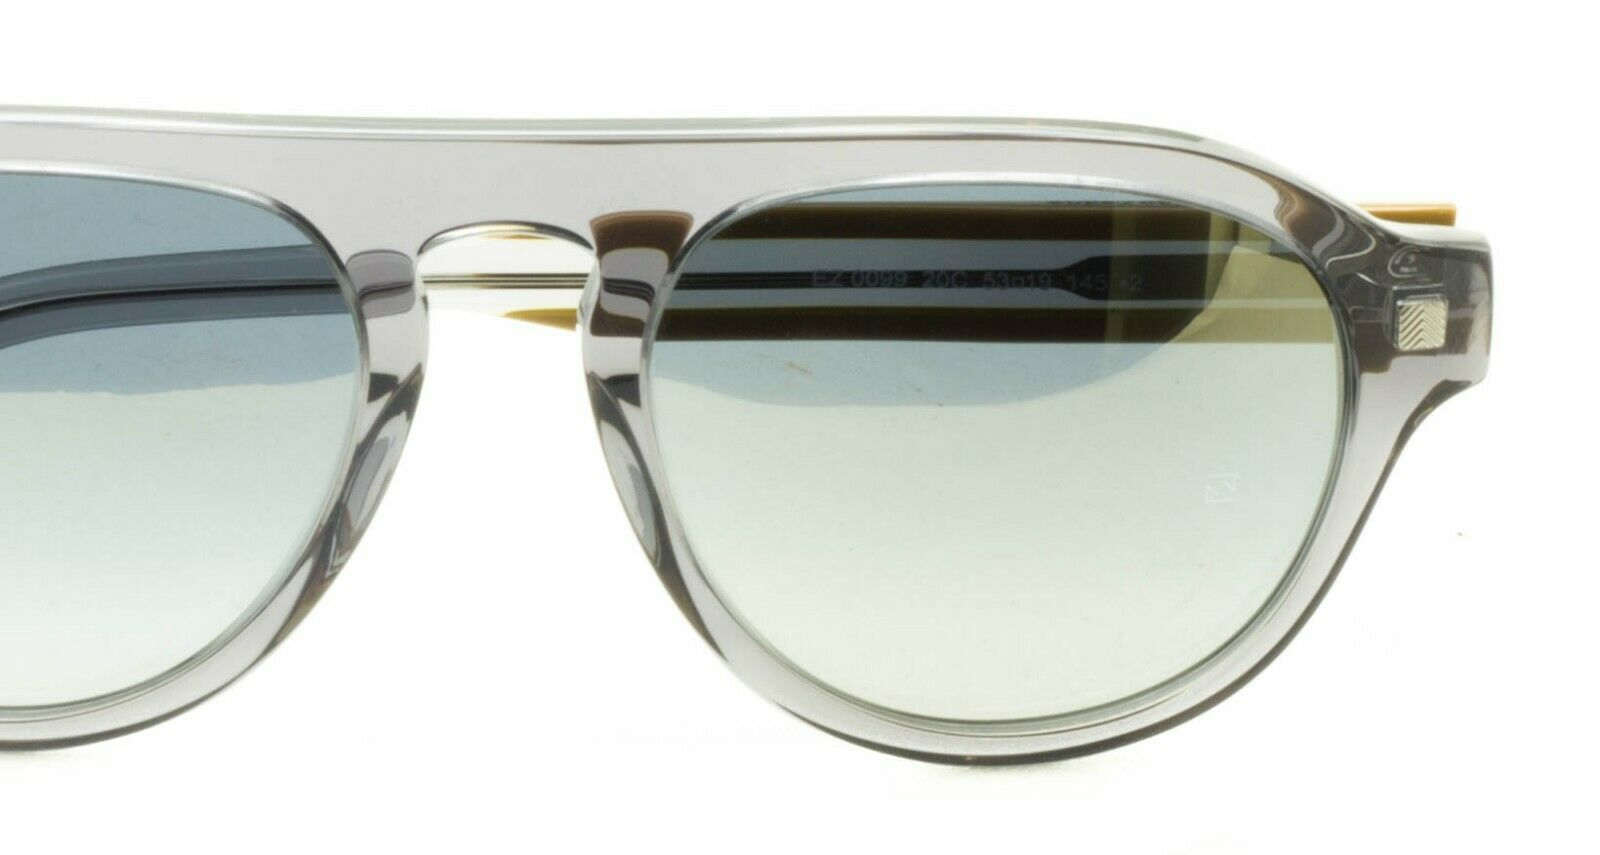 Ermenegildo Zegna EZ 0099 20C 53mm Sunglasses Shades Glasses 100% UV New - Italy